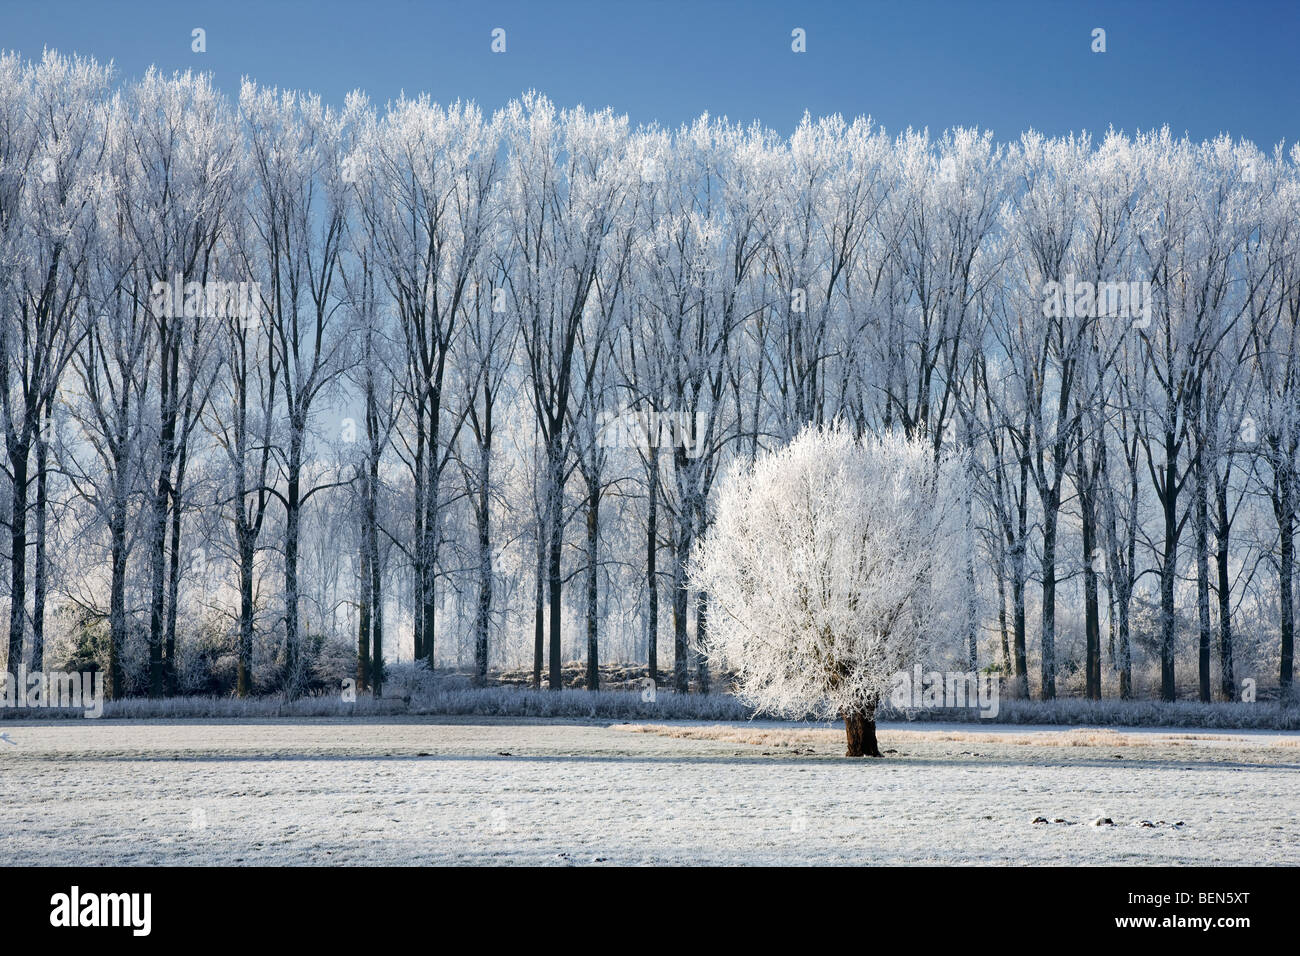 Pollard willow (Salix sp.) and poplars (Populus sp.) covered in hoarfrost in winter, Belgium - Stock Image